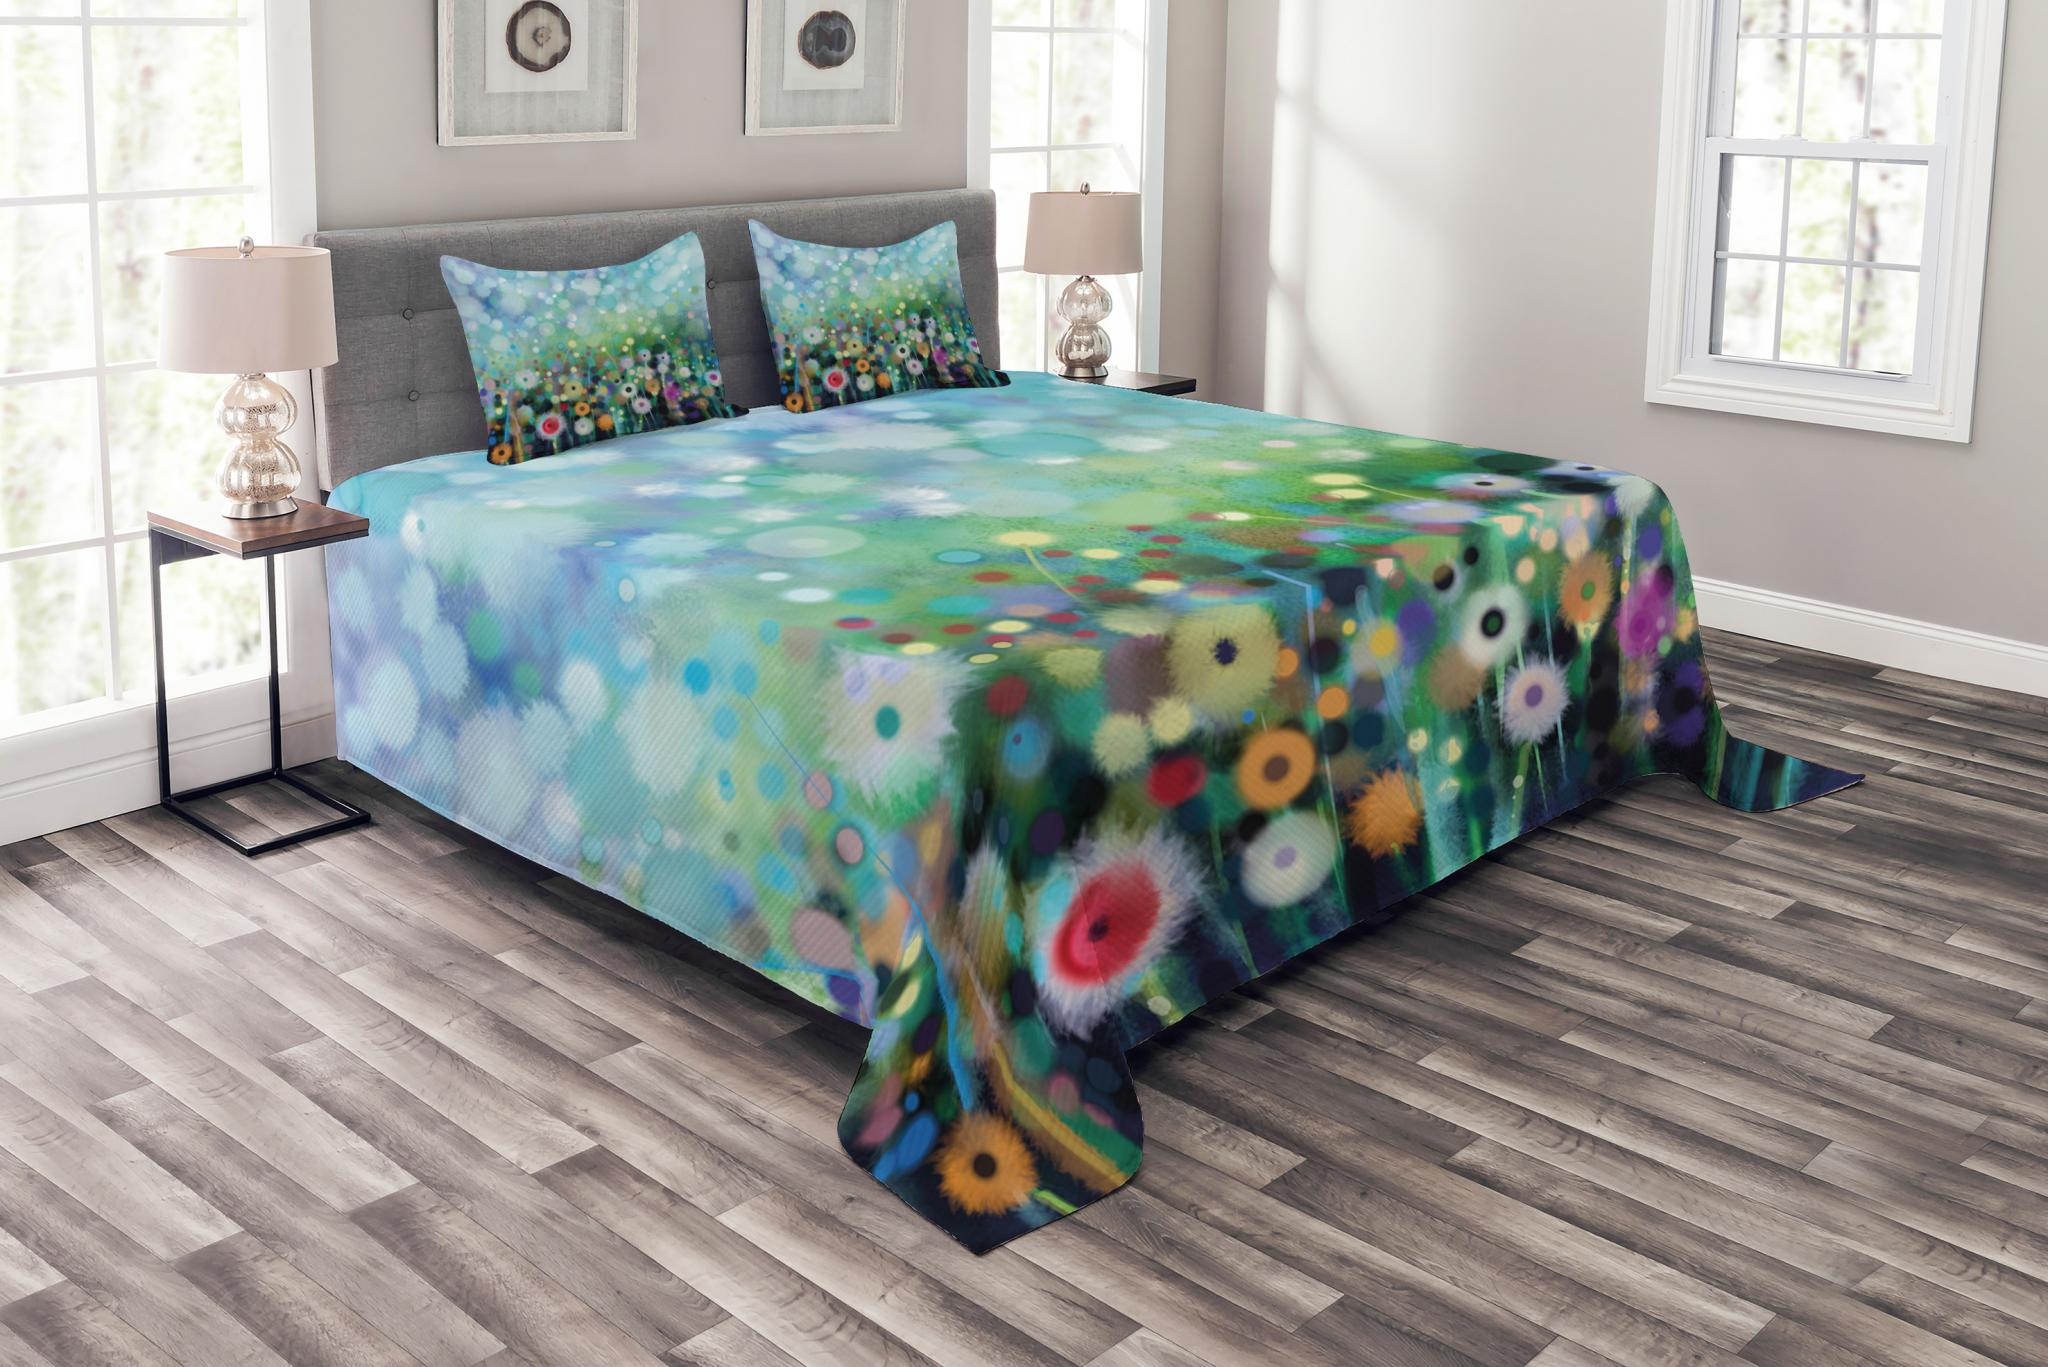 Flower Bedspread Set Dandelion Seeds In Air Splashes Pollination Time Mother Earth Growing Giving Life Decorative Quilted Coverlet Set With Pillow Shams Included Multicolor By Ambesonne Walmart Com Walmart Com